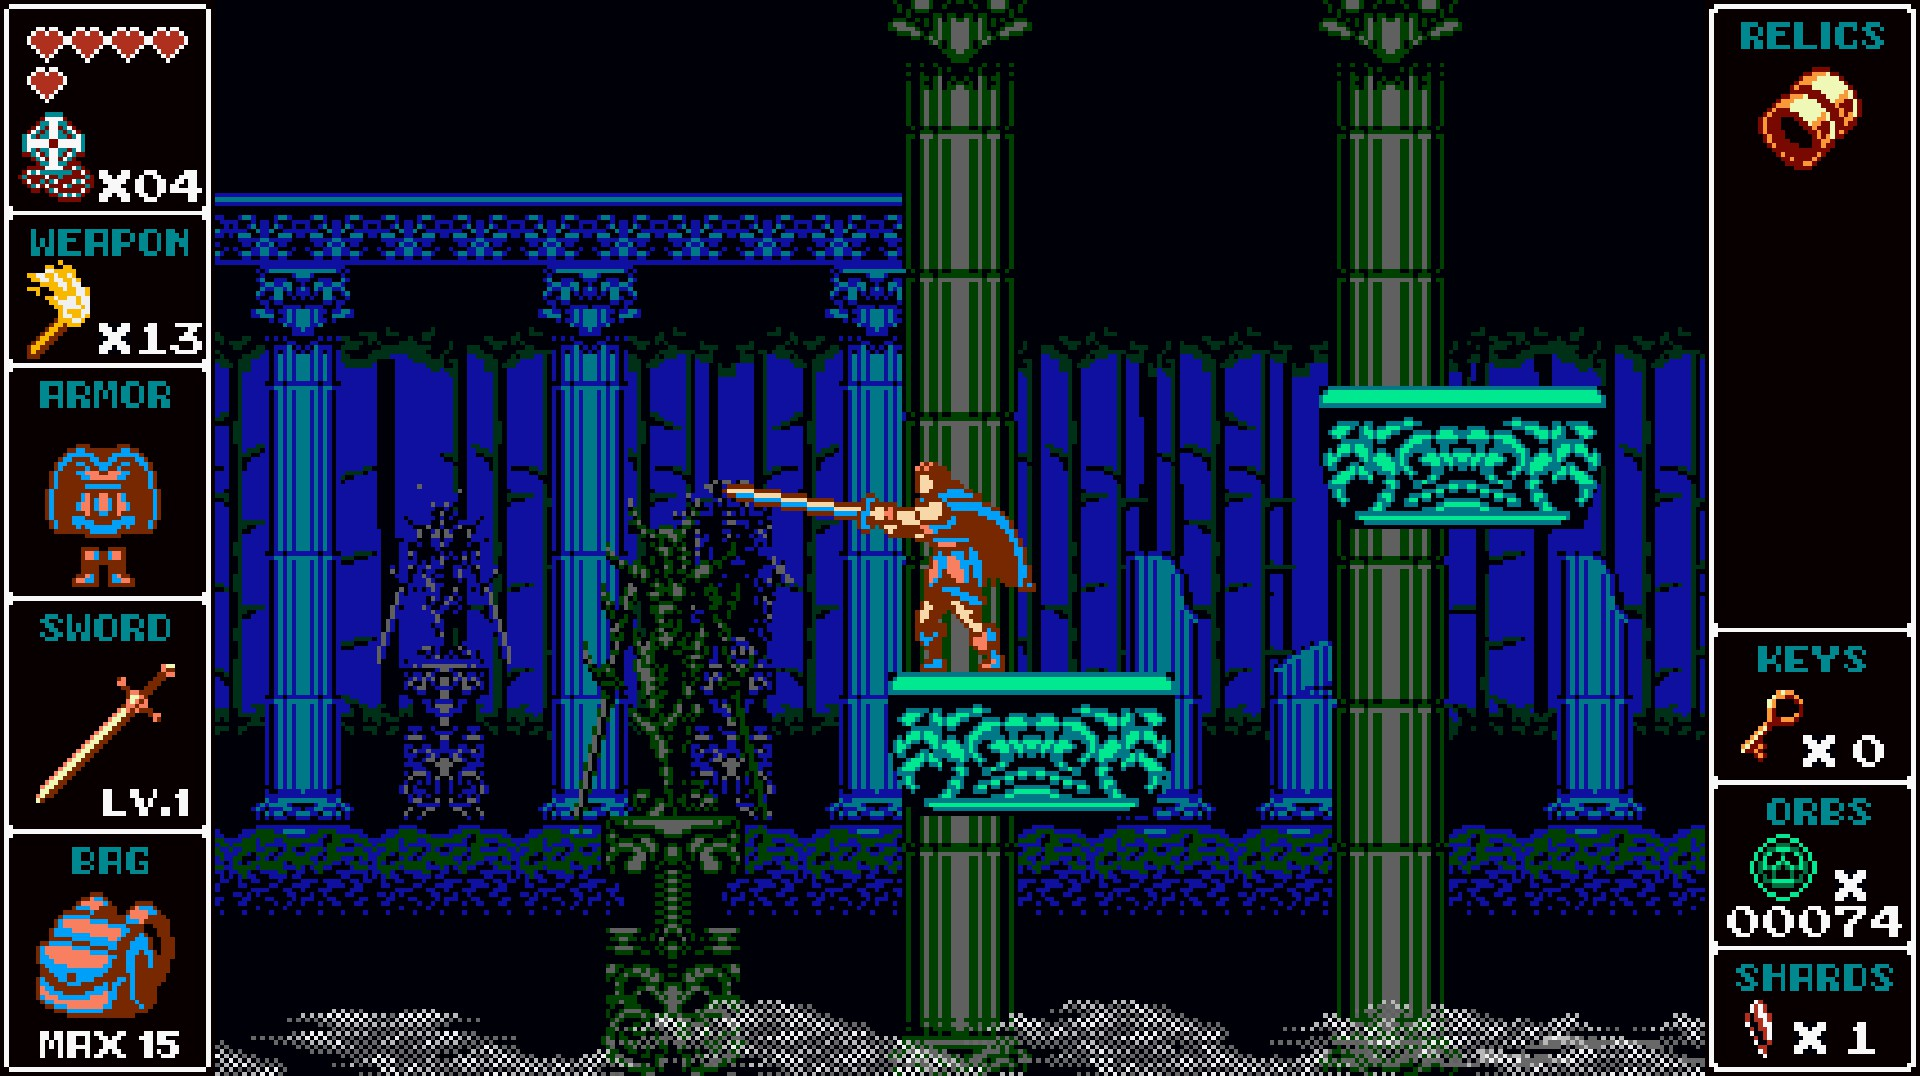 Just trying to push this statue over with my sword... just a little more and I've got it!